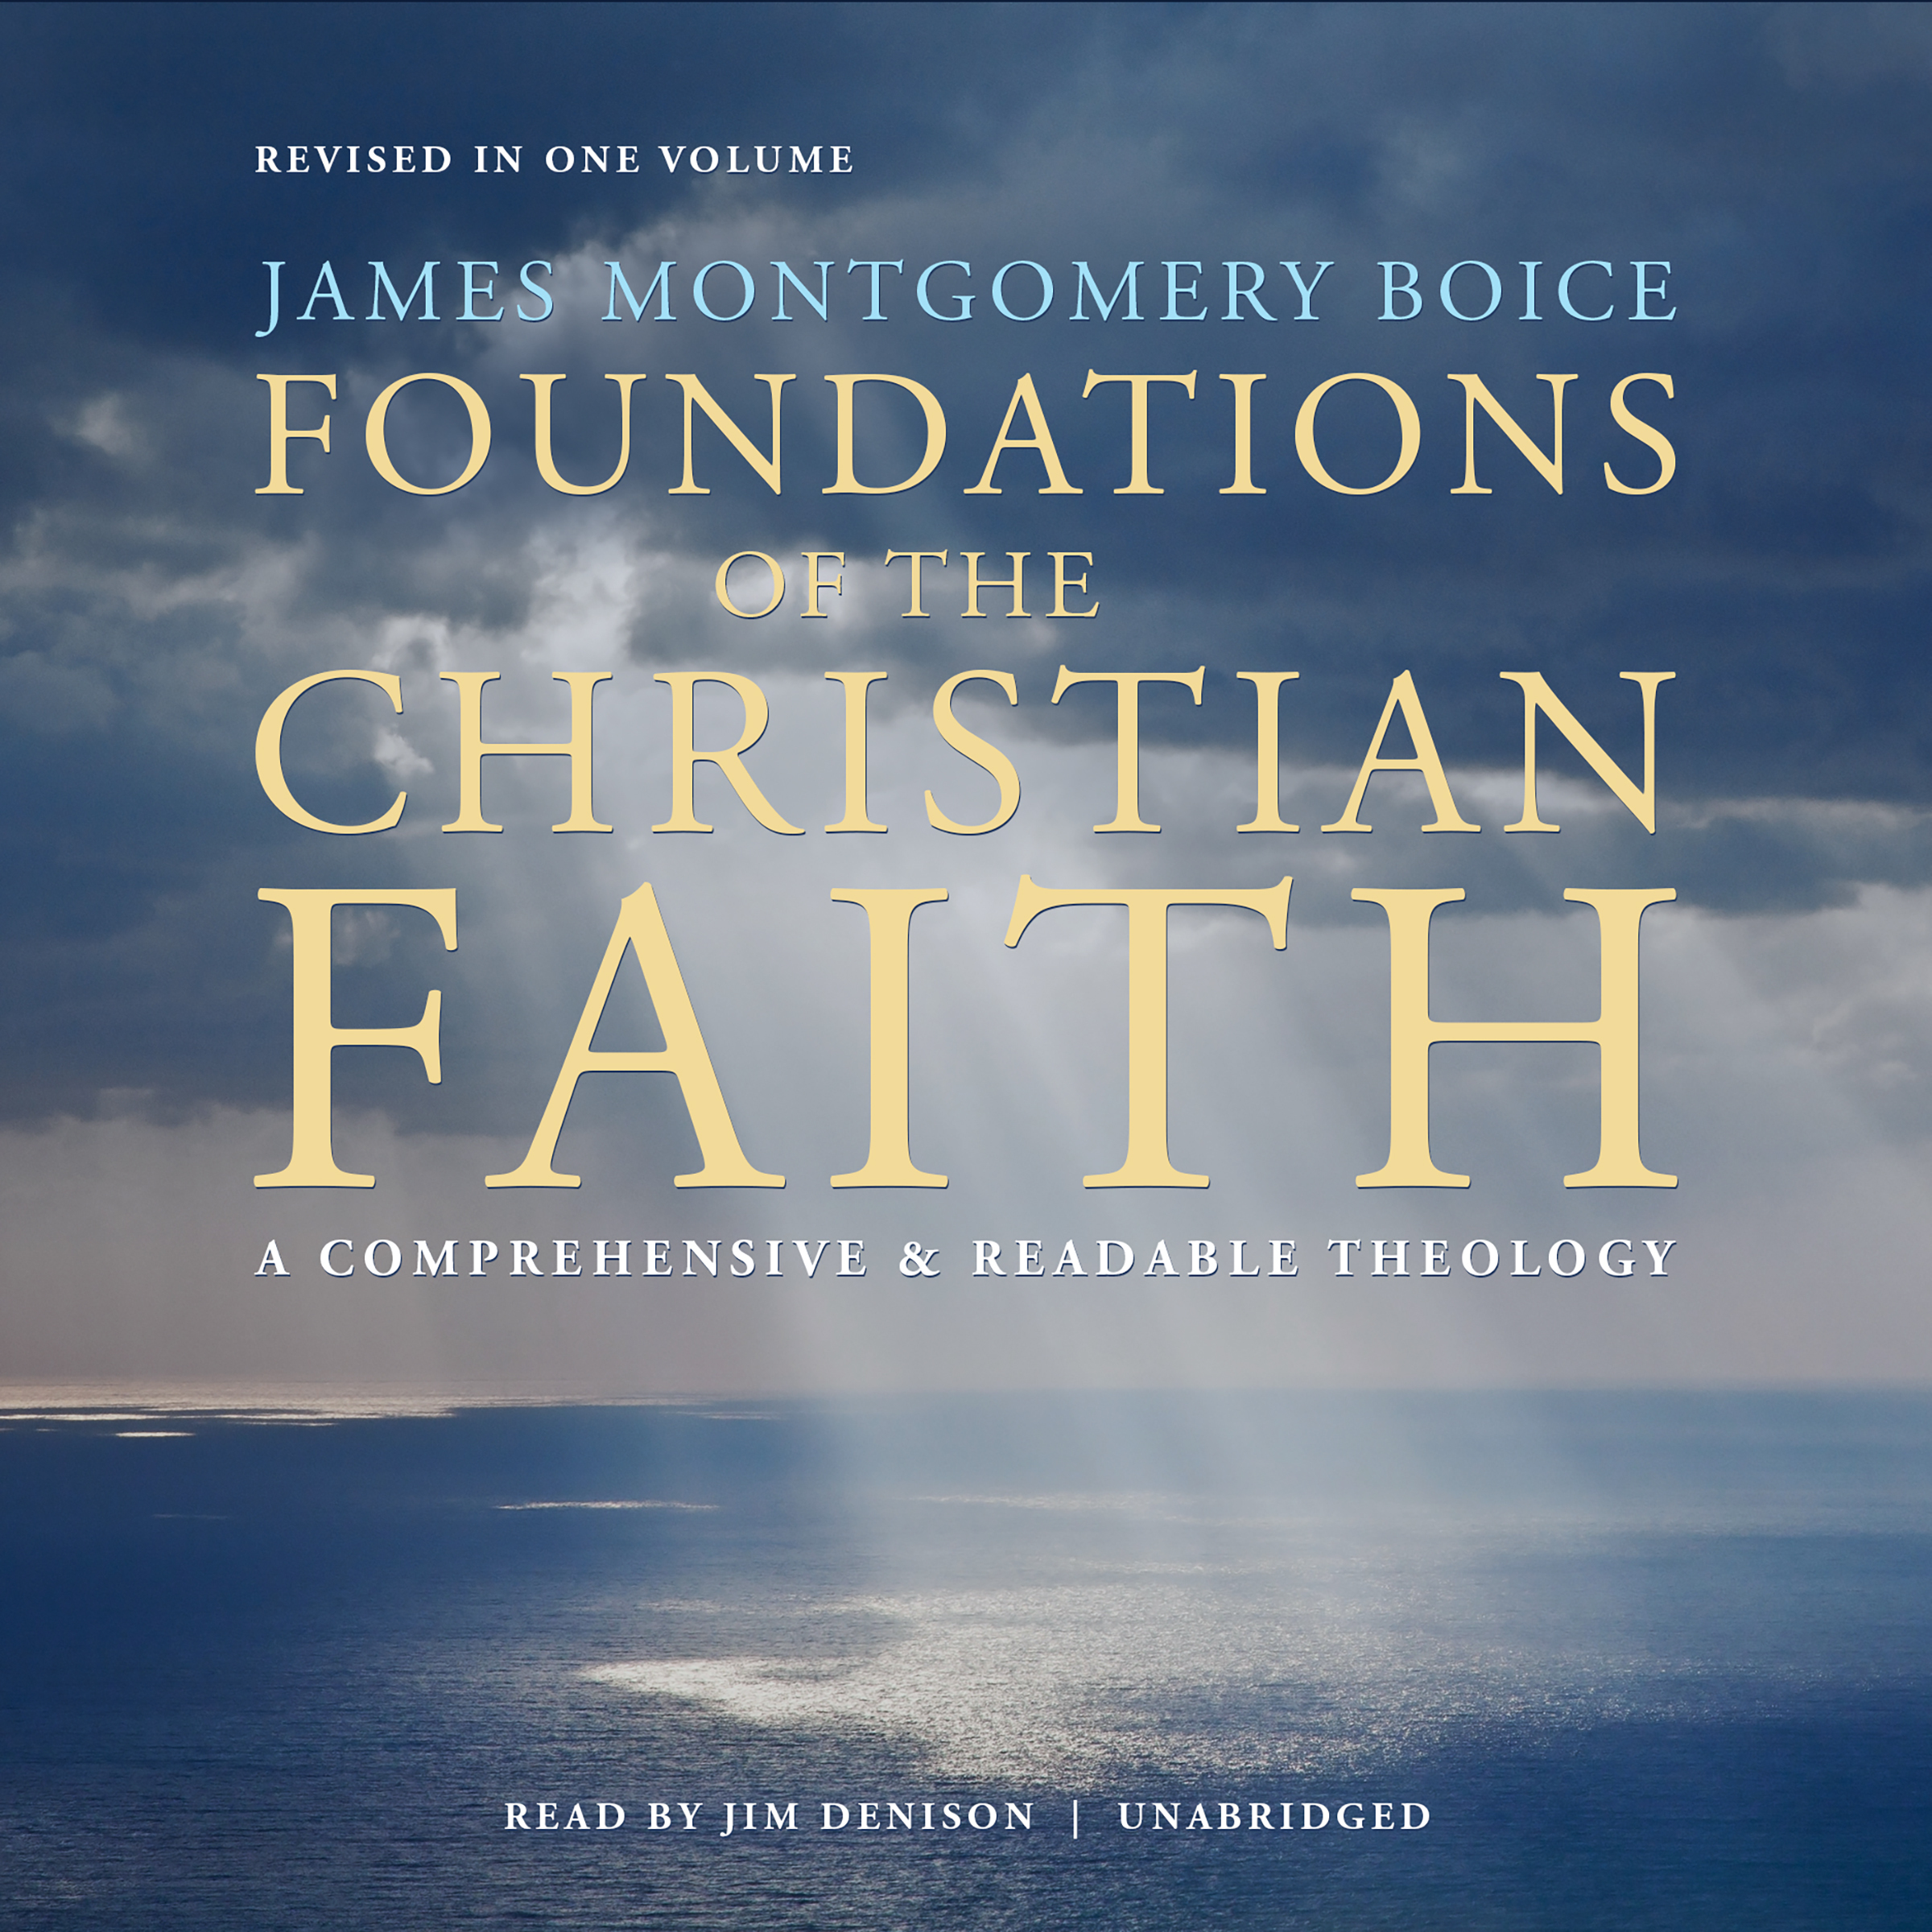 Printable Foundations of the Christian Faith, Revised in One Volume: A Comprehensive & Readable Theology Audiobook Cover Art